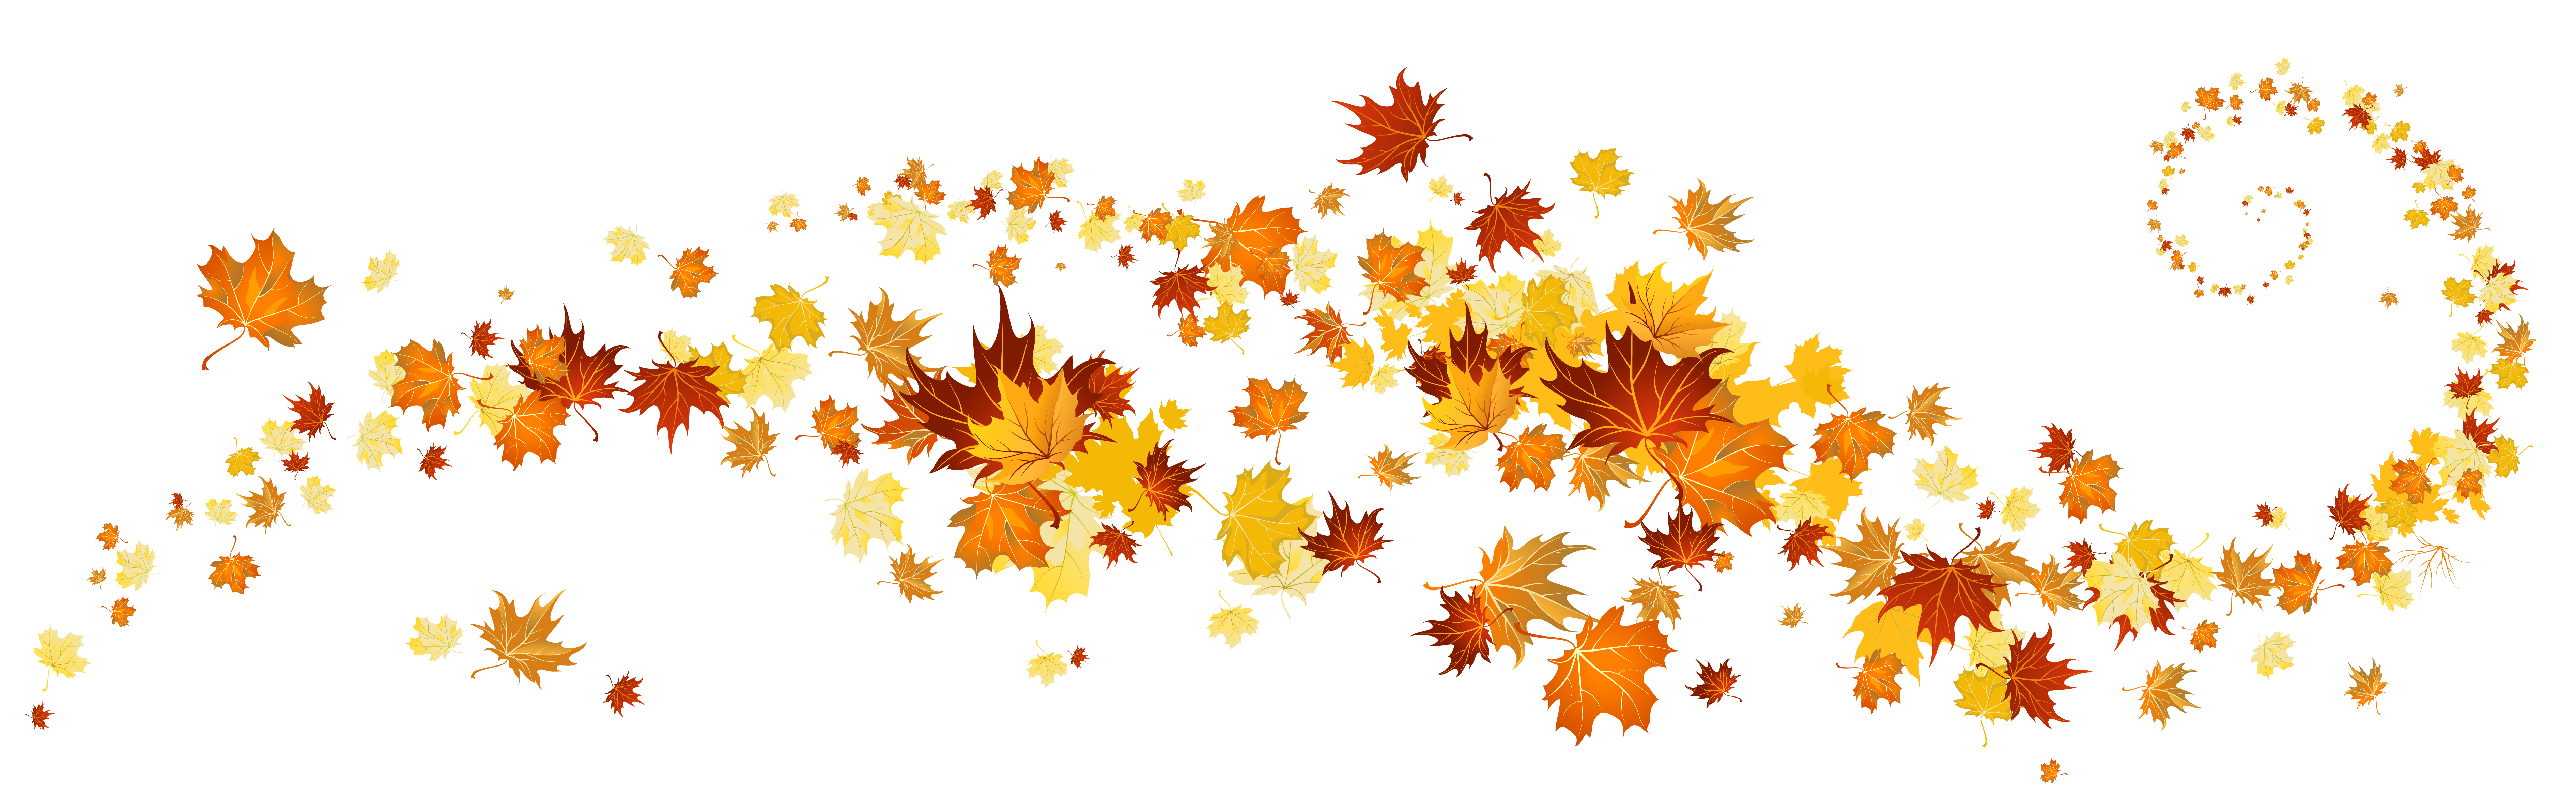 Clipart autumn leaves.